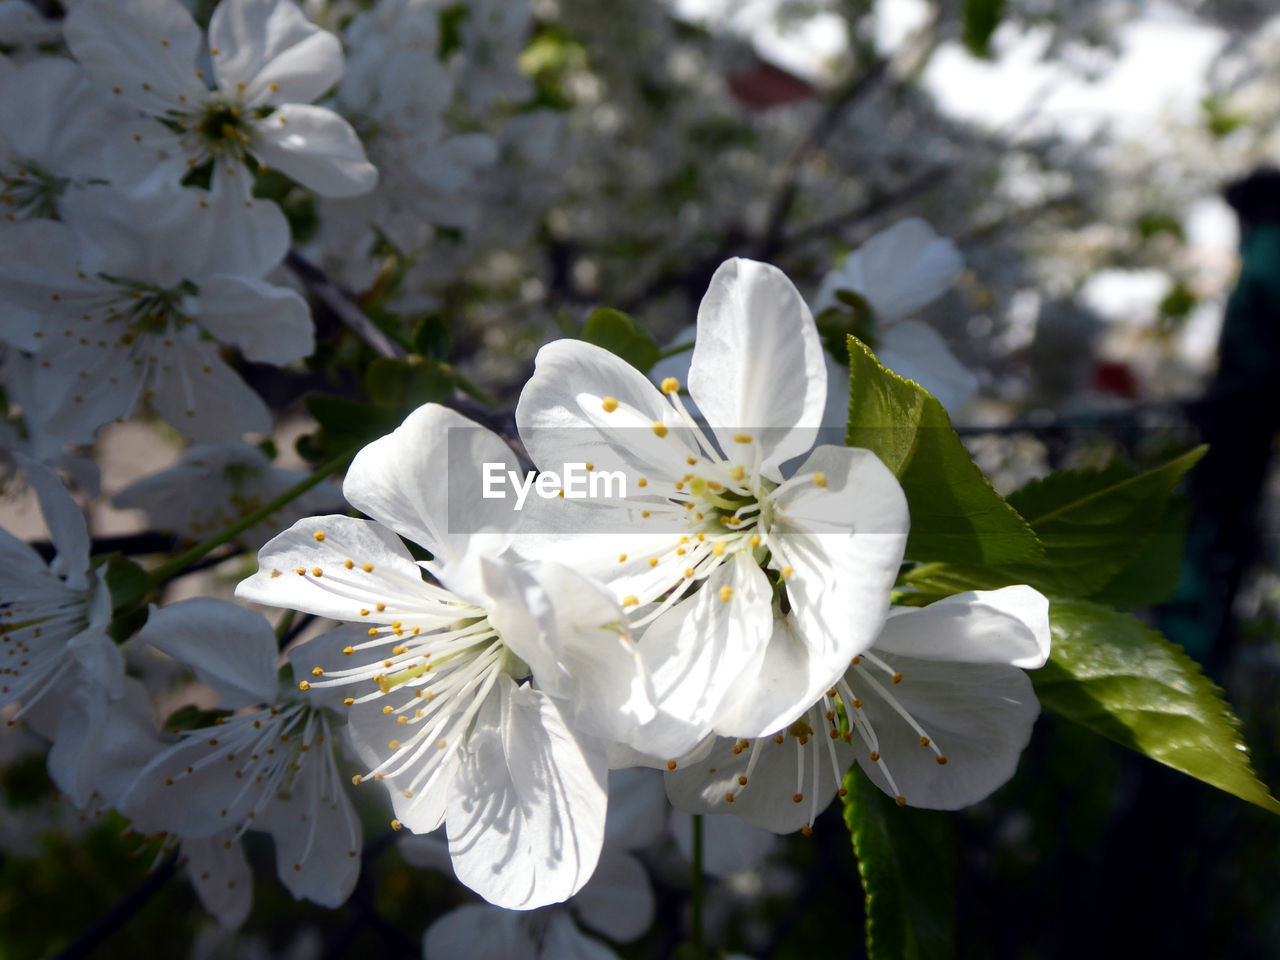 flowering plant, flower, plant, fragility, freshness, vulnerability, petal, beauty in nature, growth, white color, flower head, inflorescence, close-up, pollen, nature, focus on foreground, tree, blossom, day, springtime, no people, cherry blossom, spring